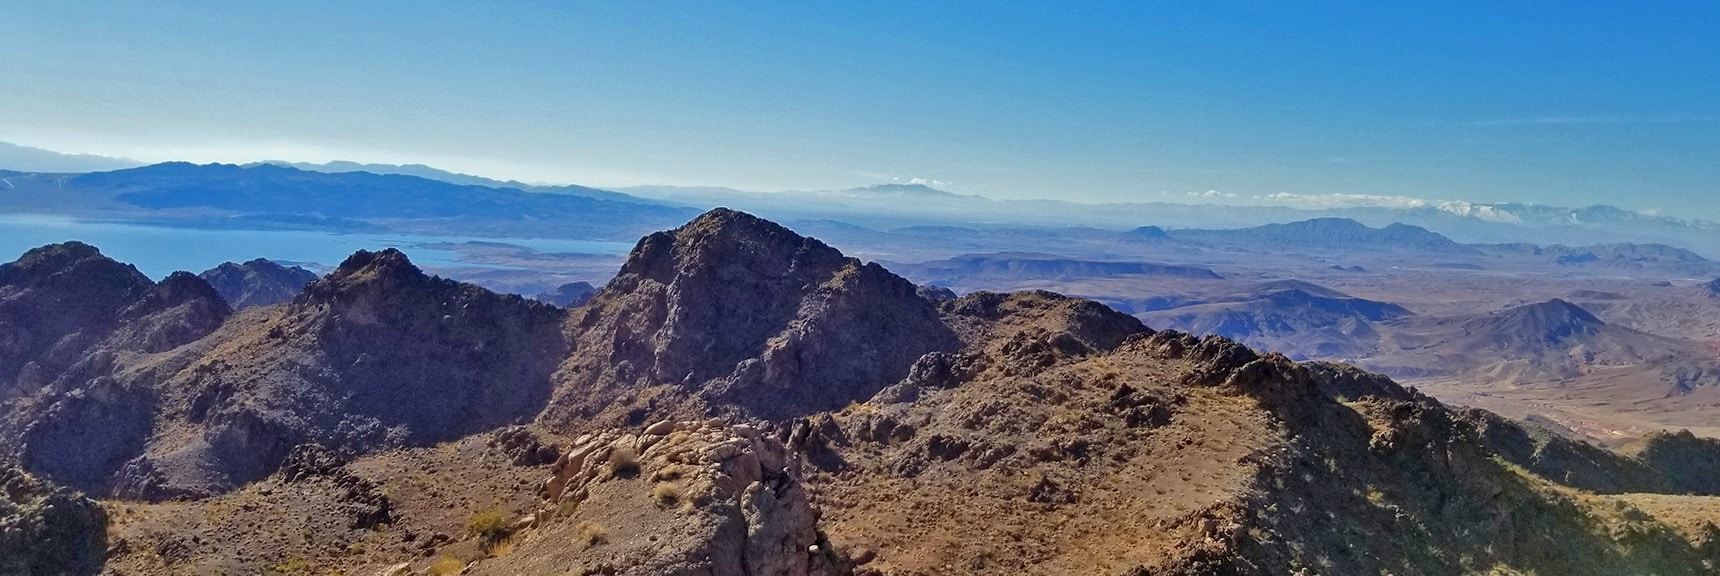 Lake Mead and Frenchman Mt Viewed from Hamblin Mt. Summit | Hamblin Mountain, Lake Mead National Conservation Area, Nevada